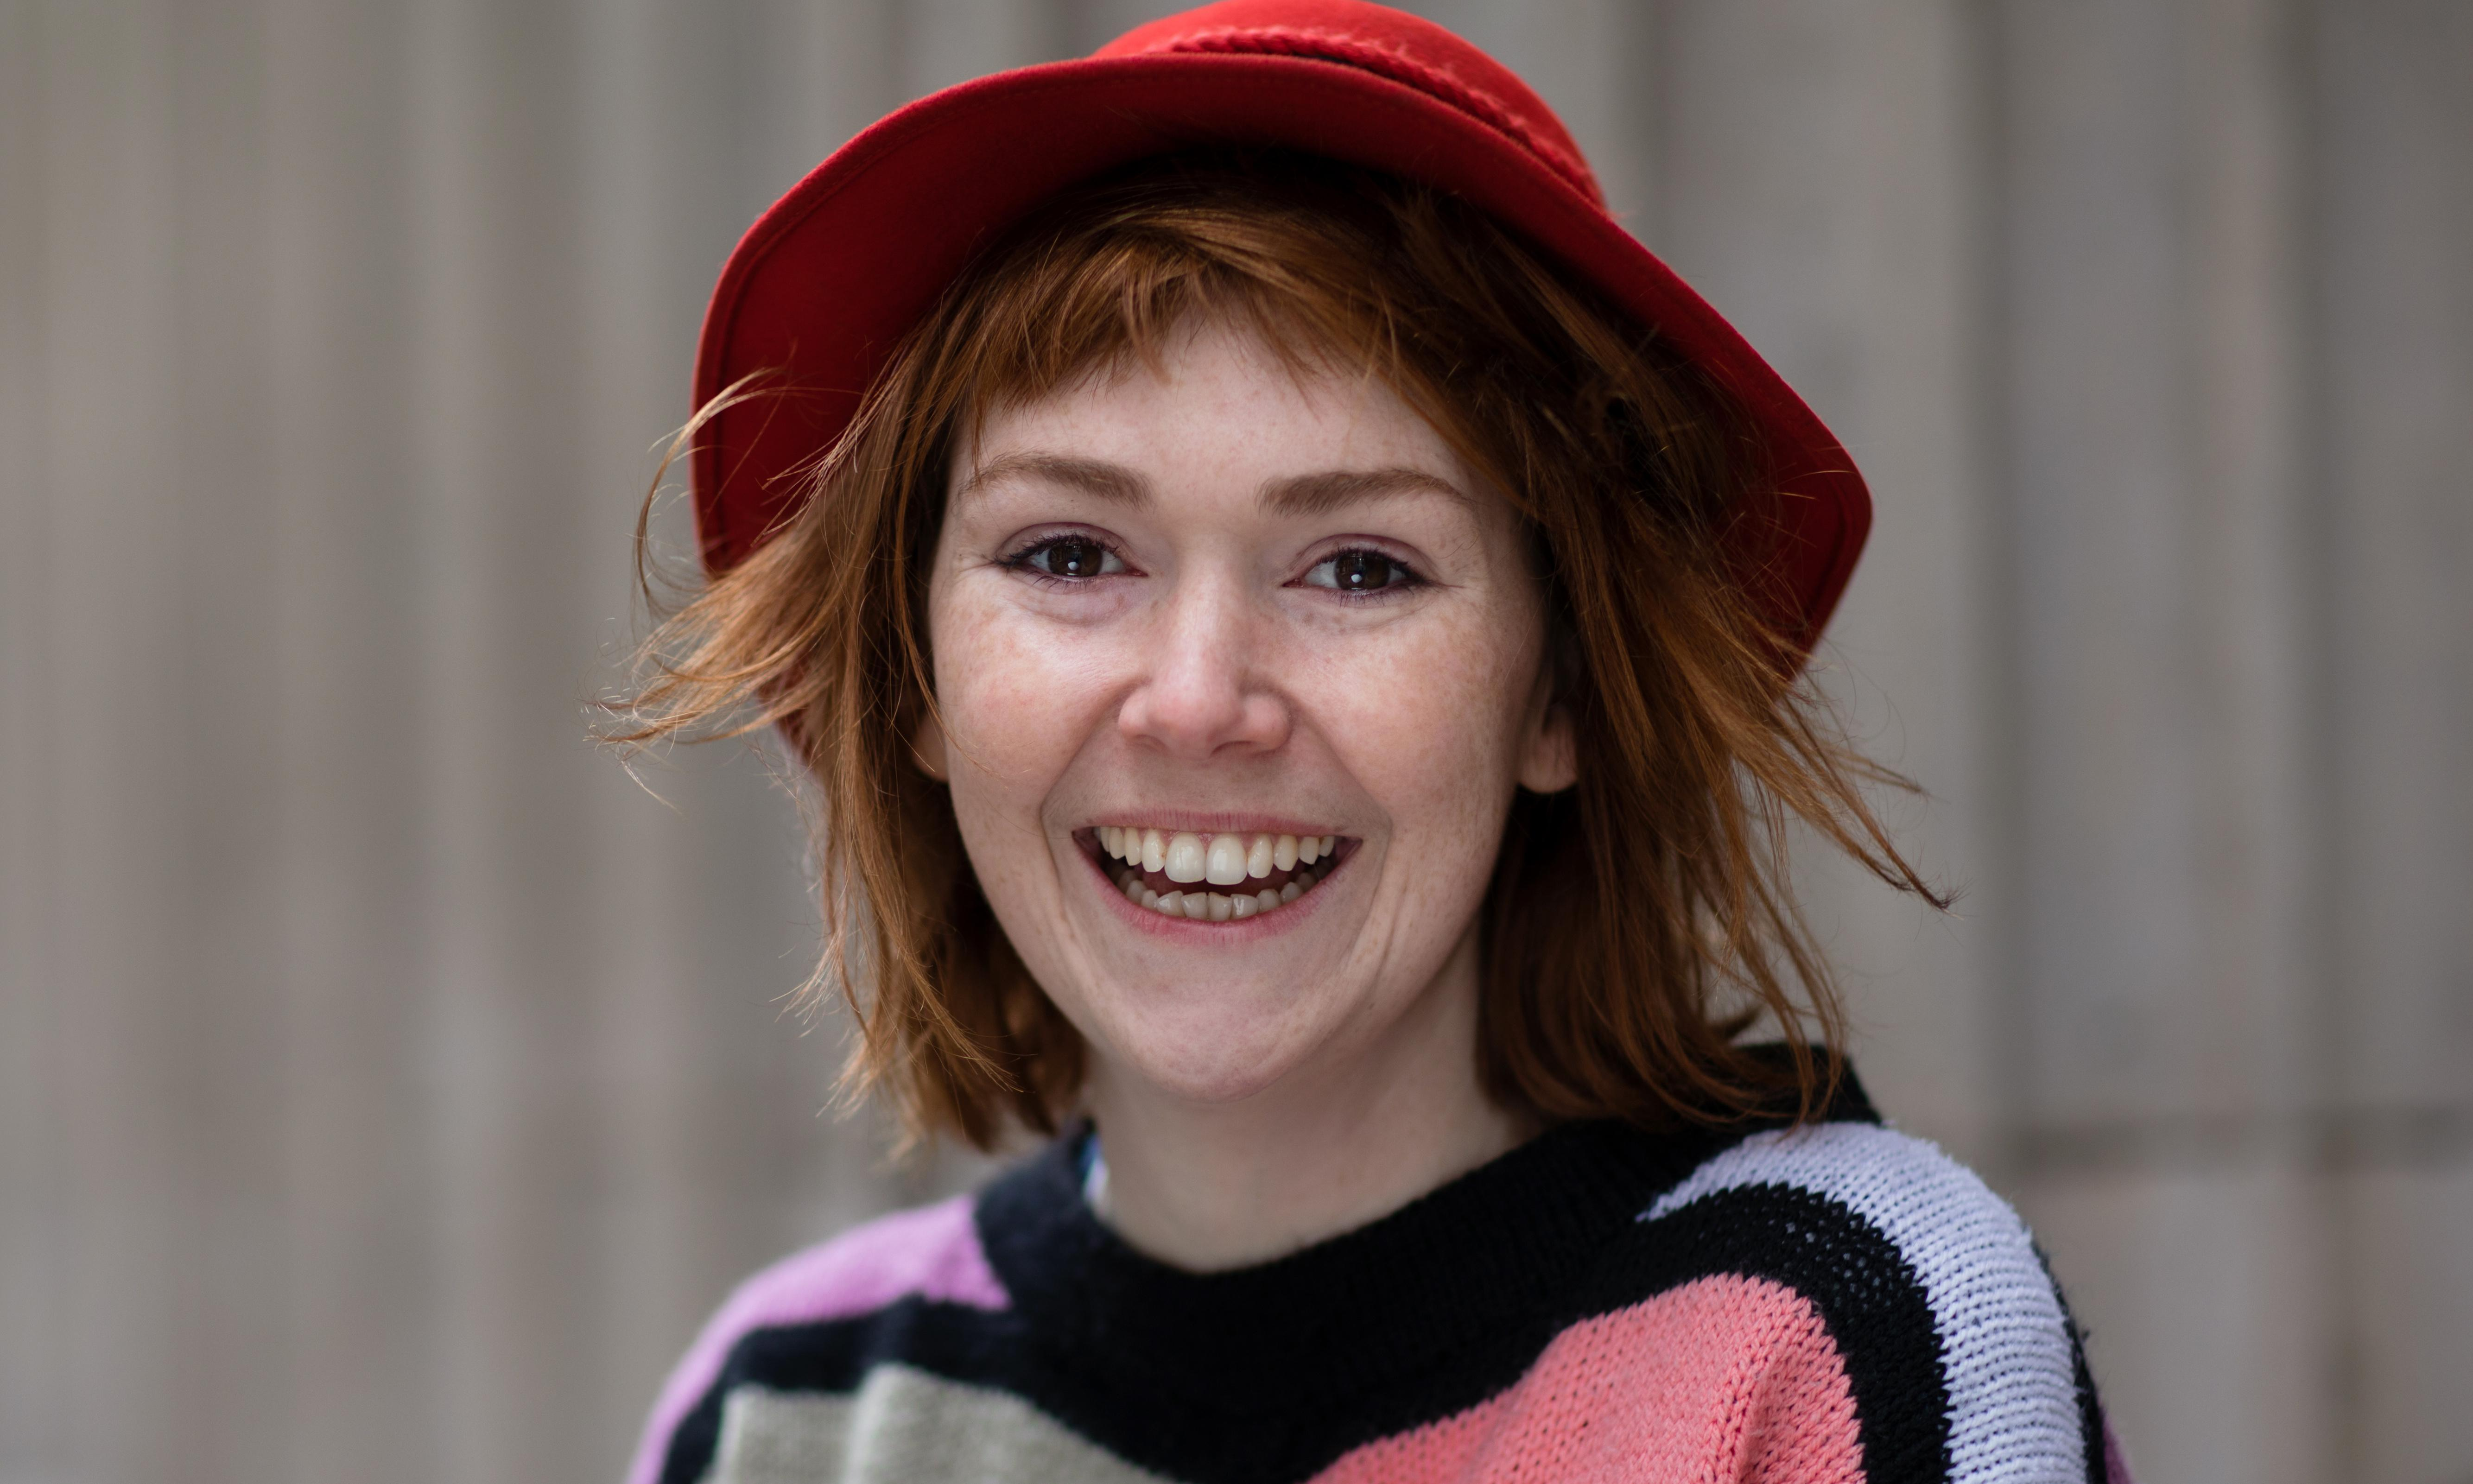 Elf Lyons: 'I dreamed I married Stormzy and we remade Saw as a musical'